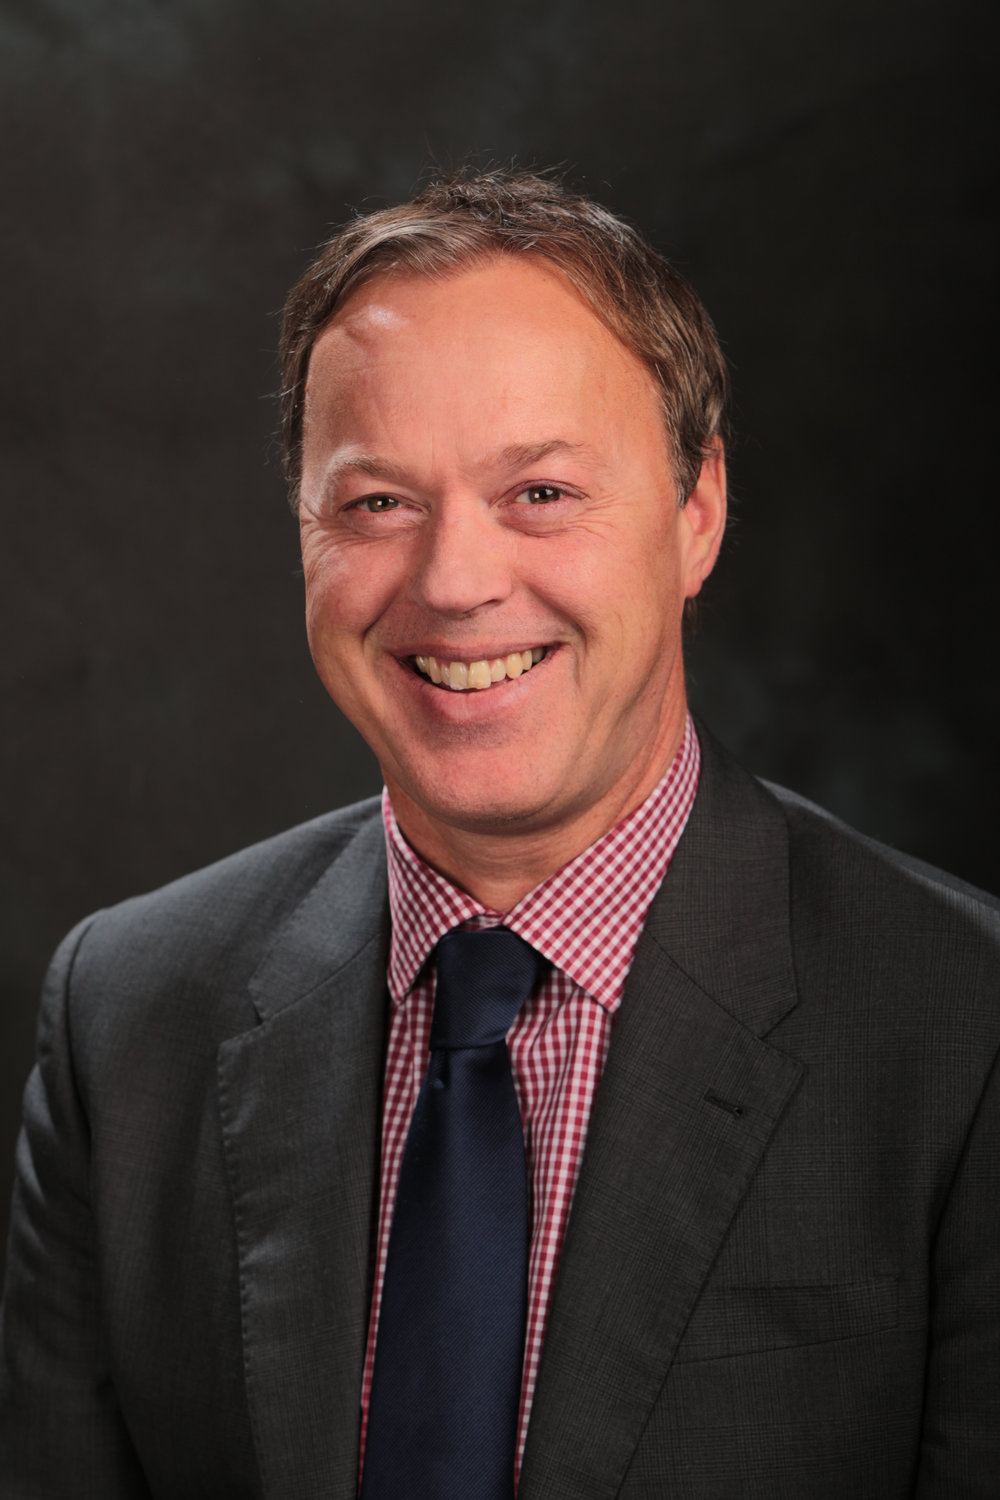 Stuart Hart, Director of business development, banff & lake louise tourism